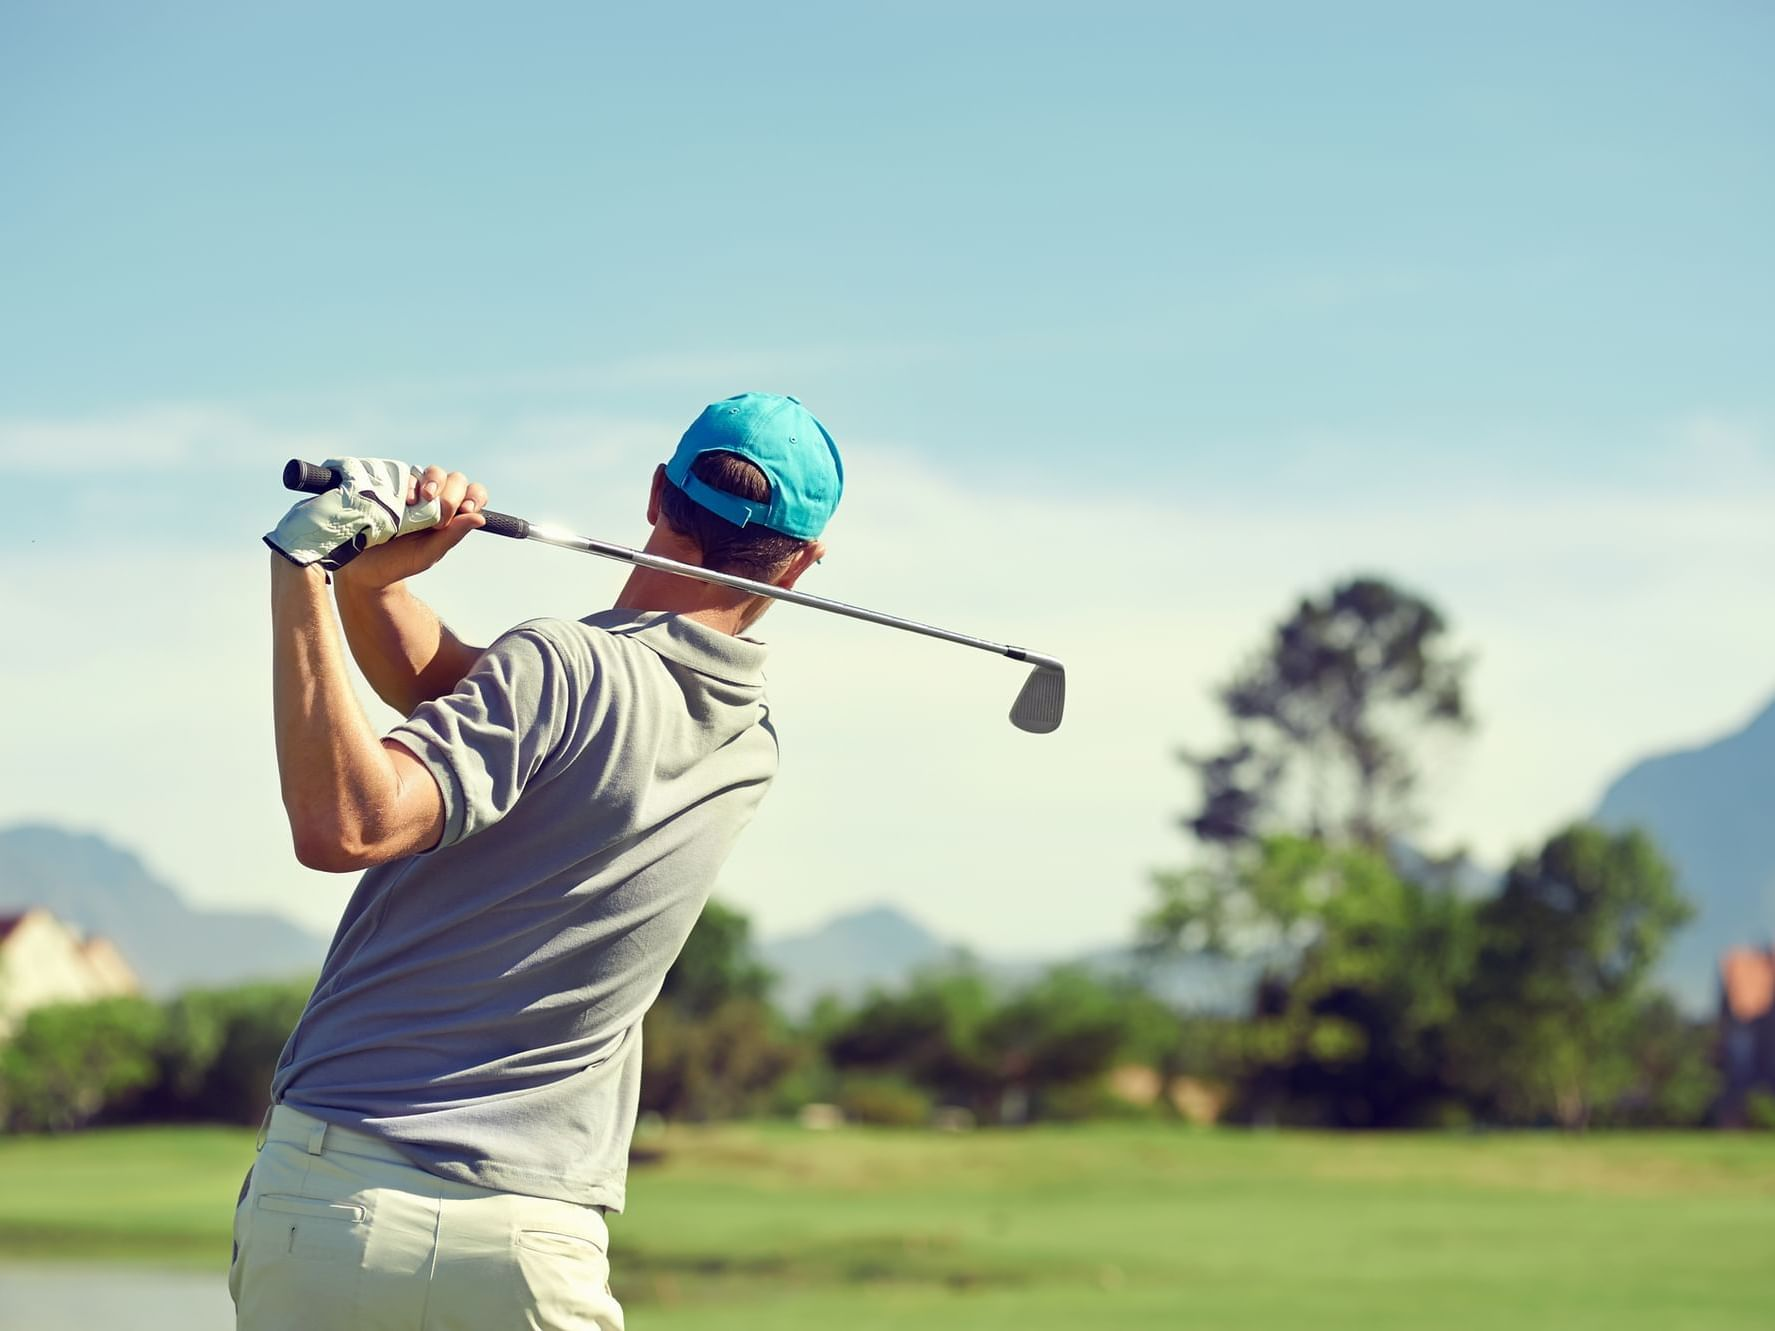 A golfer finishing his back swing after teeing off.